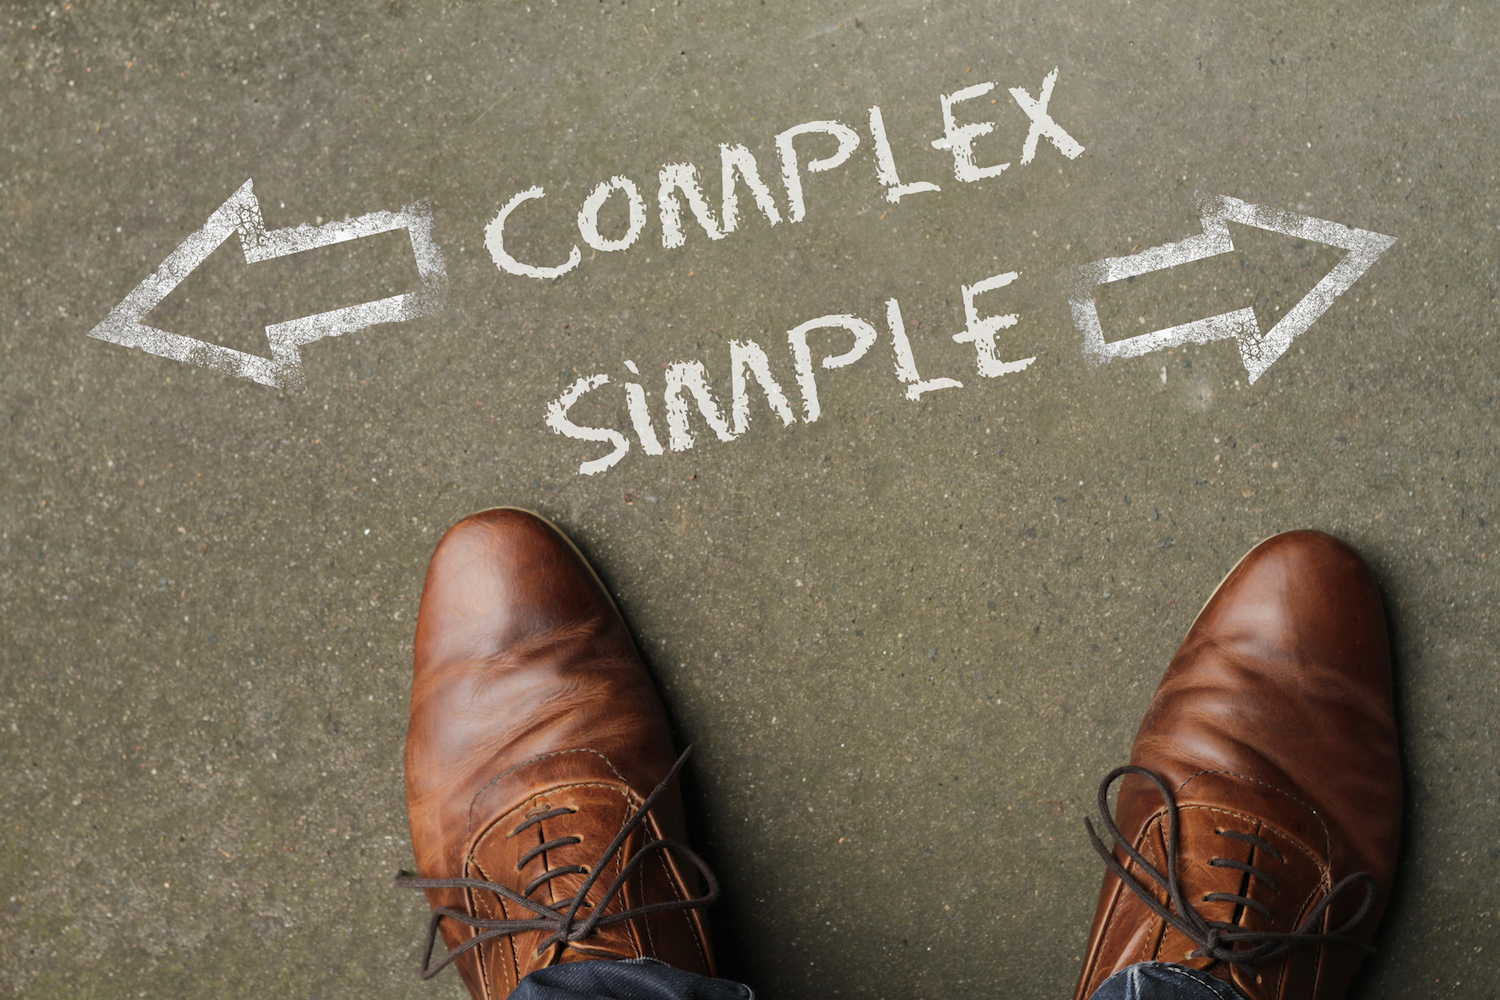 Simplicity: It's Complicated